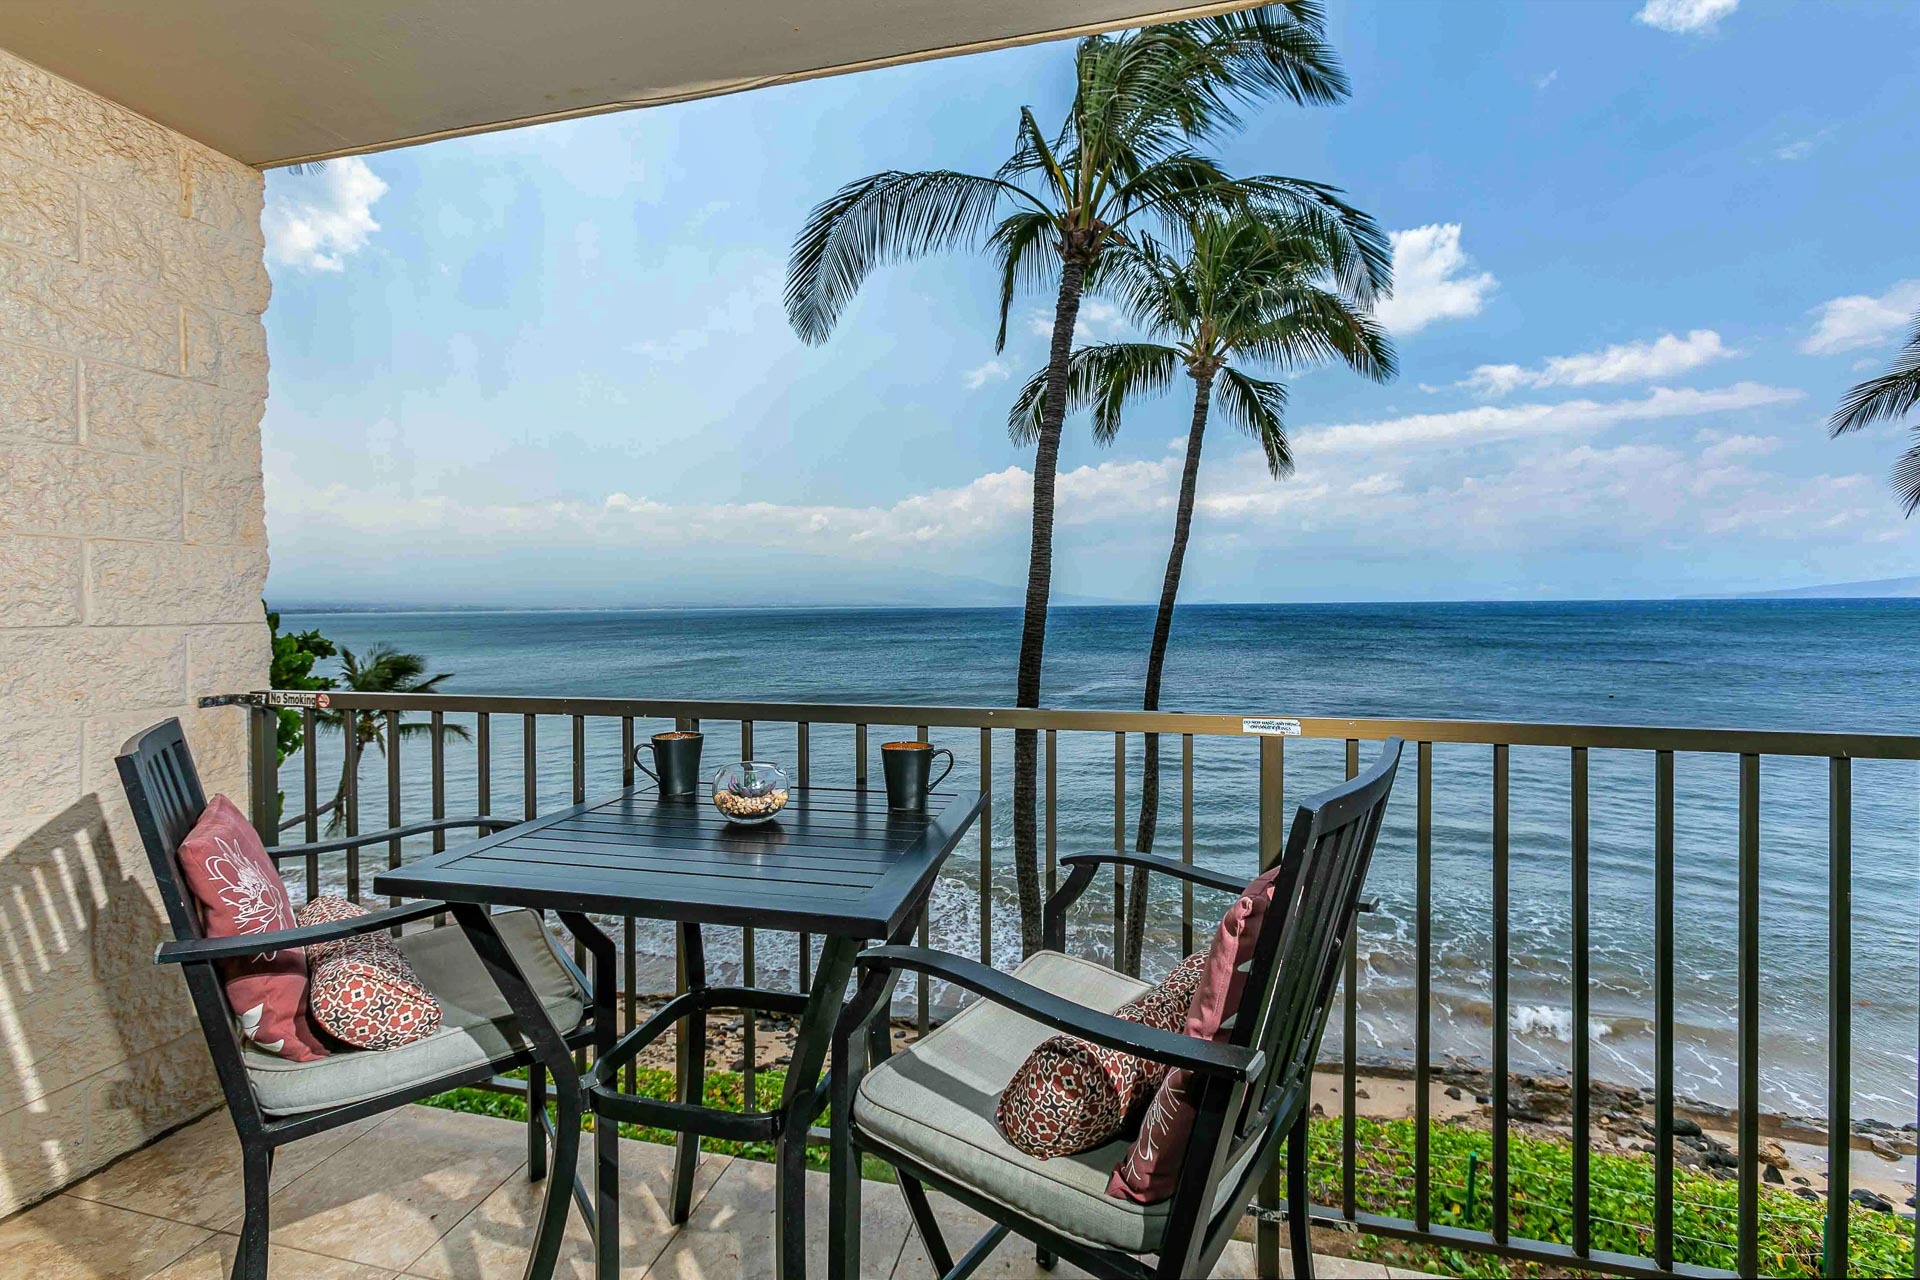 Ocean front condo! Spectacular views of the ocean, Sugar Bea